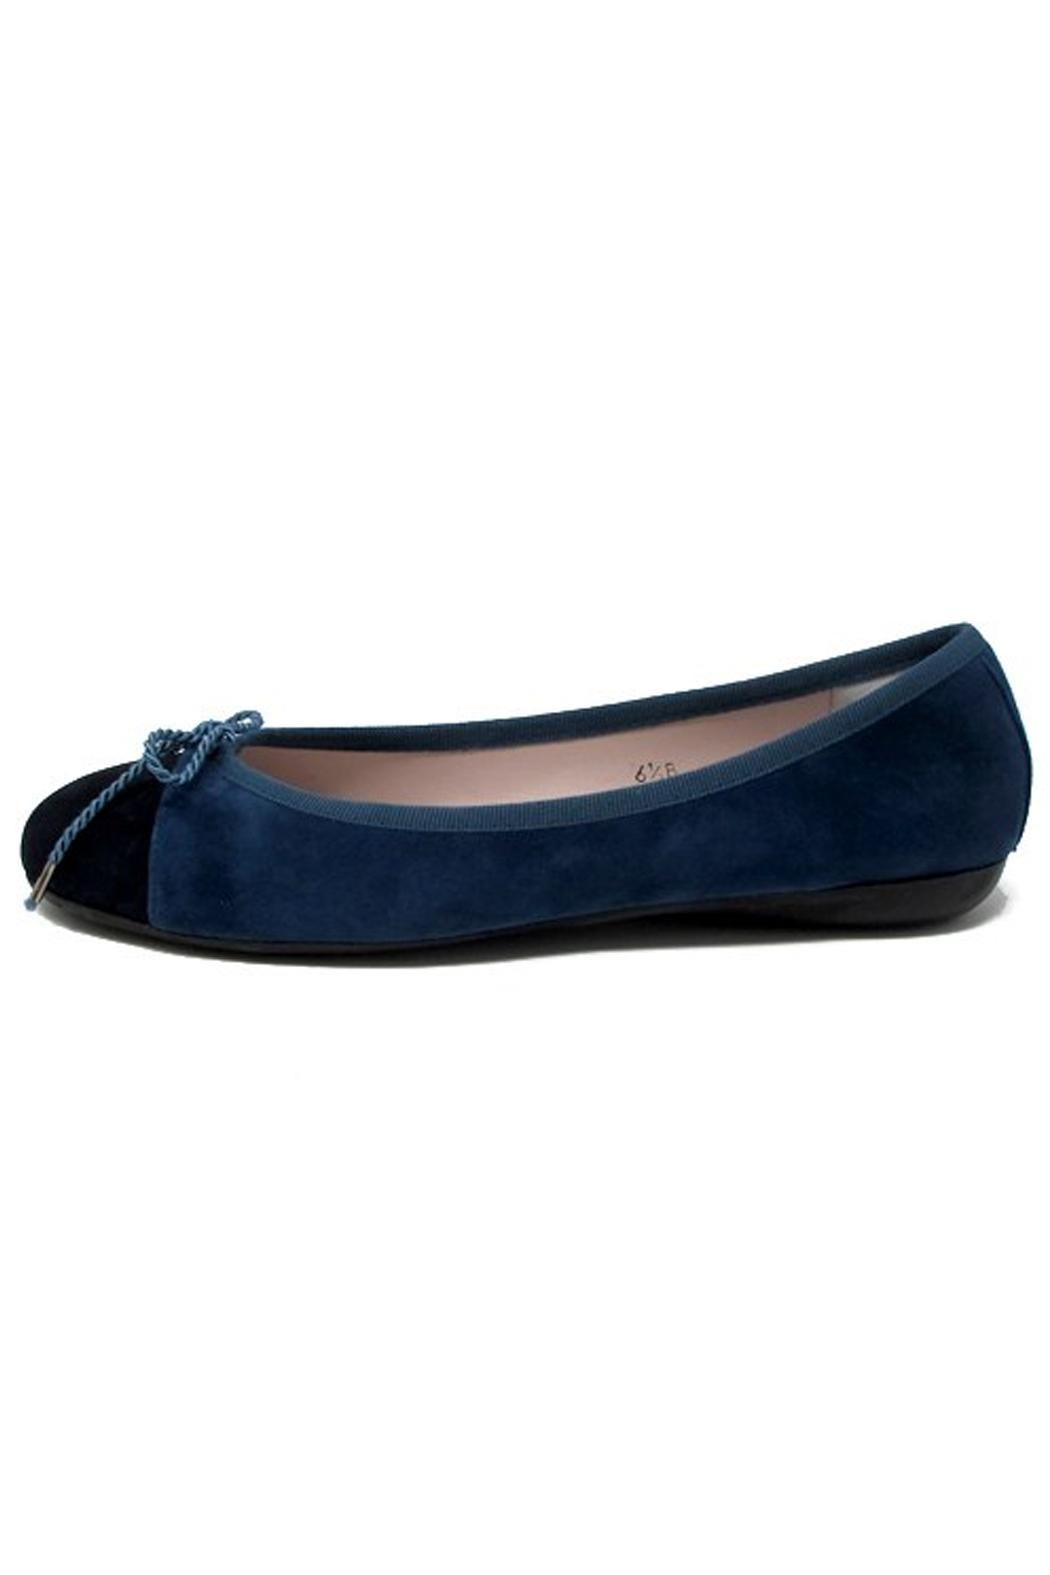 Paul Mayer Blue Suede Flats - Side Cropped Image